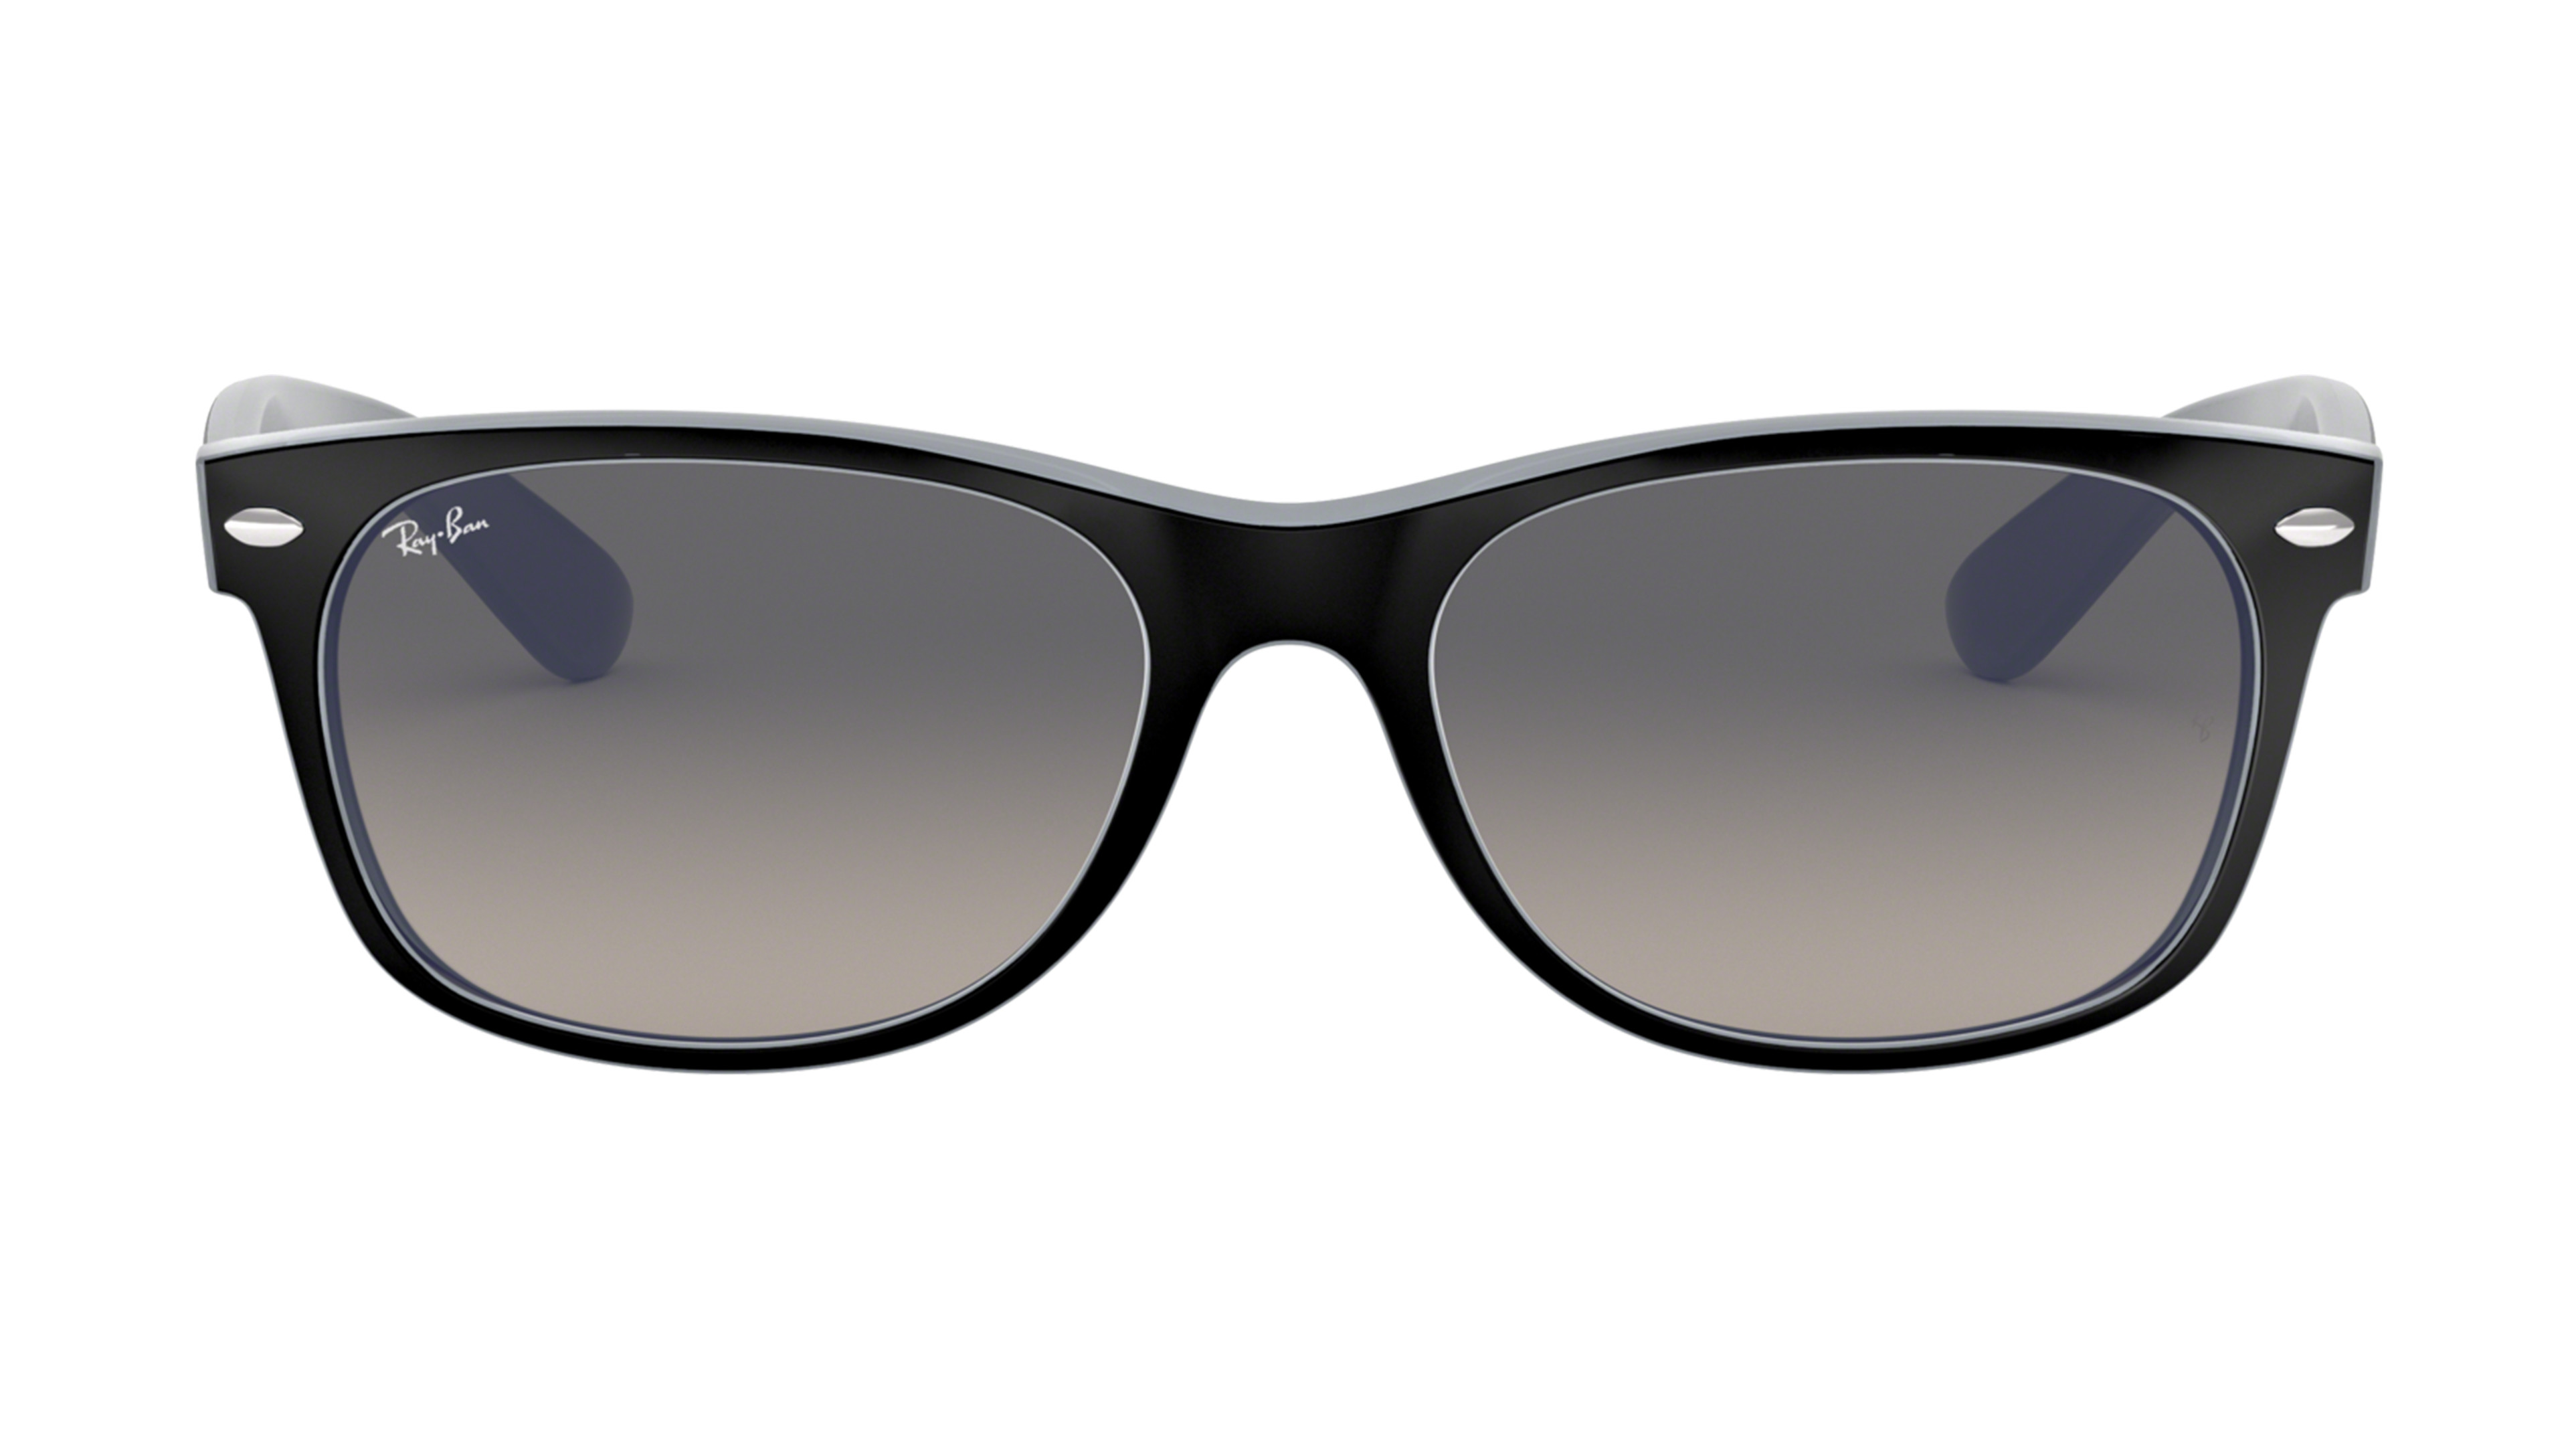 8053672788662-front-Ray-Ban-0RB2132-630971